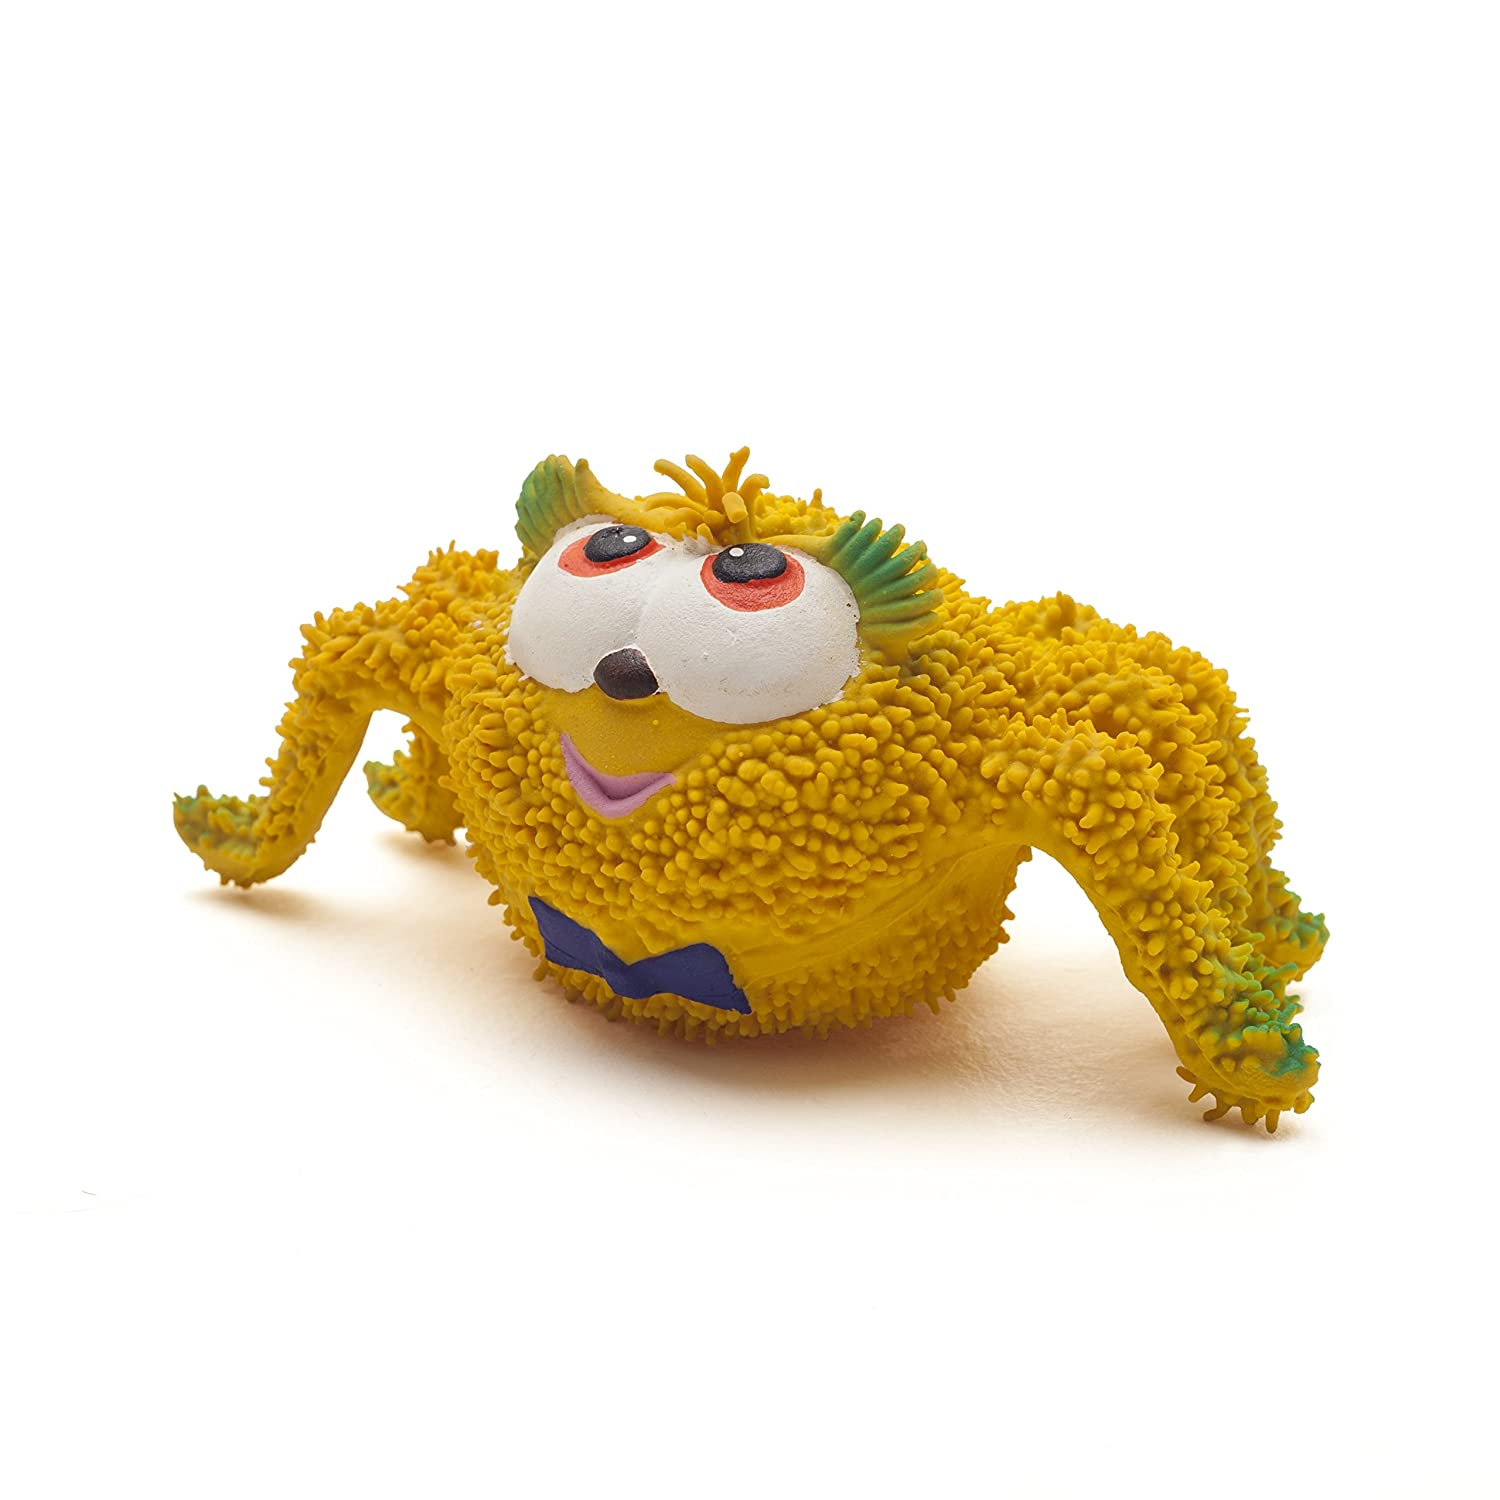 Fid Toy ALFIE the Spider Yellow Eco friendly LANCO Natural